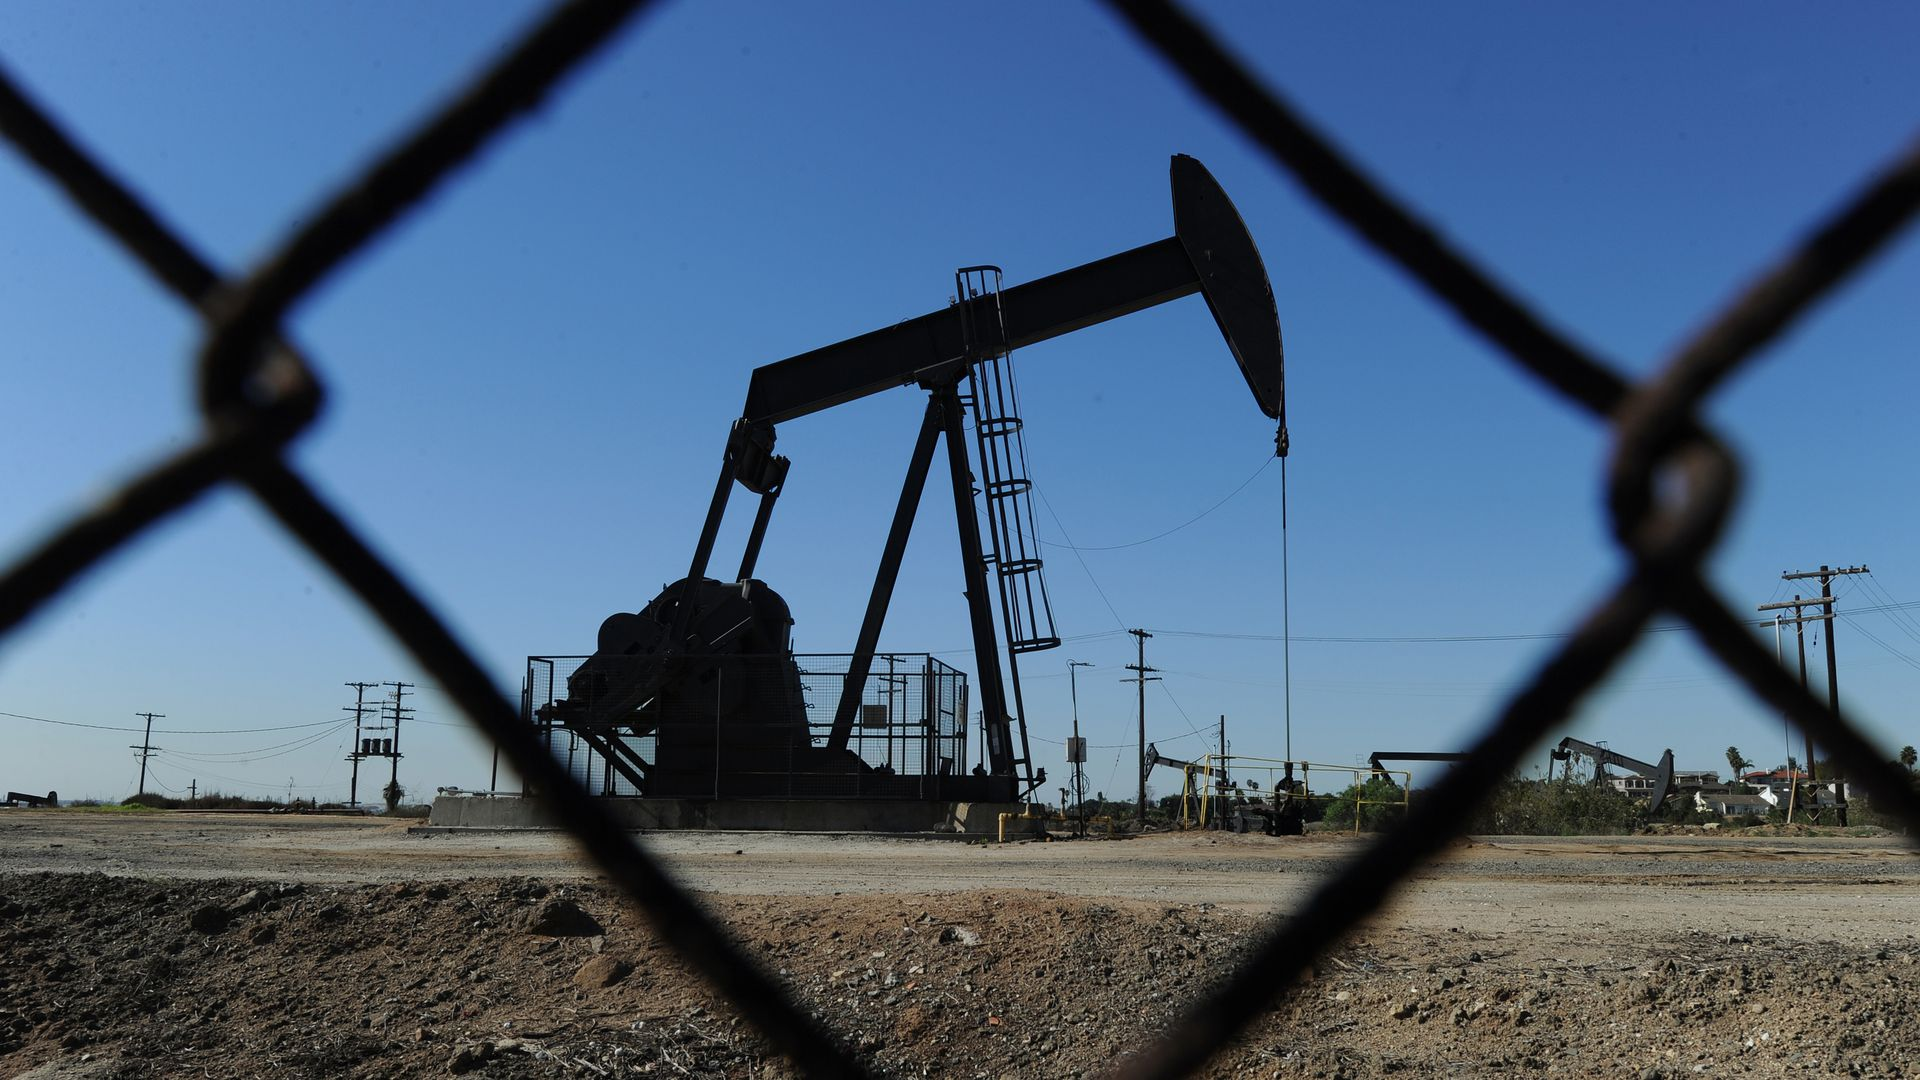 U.S. oil production highest since 1970